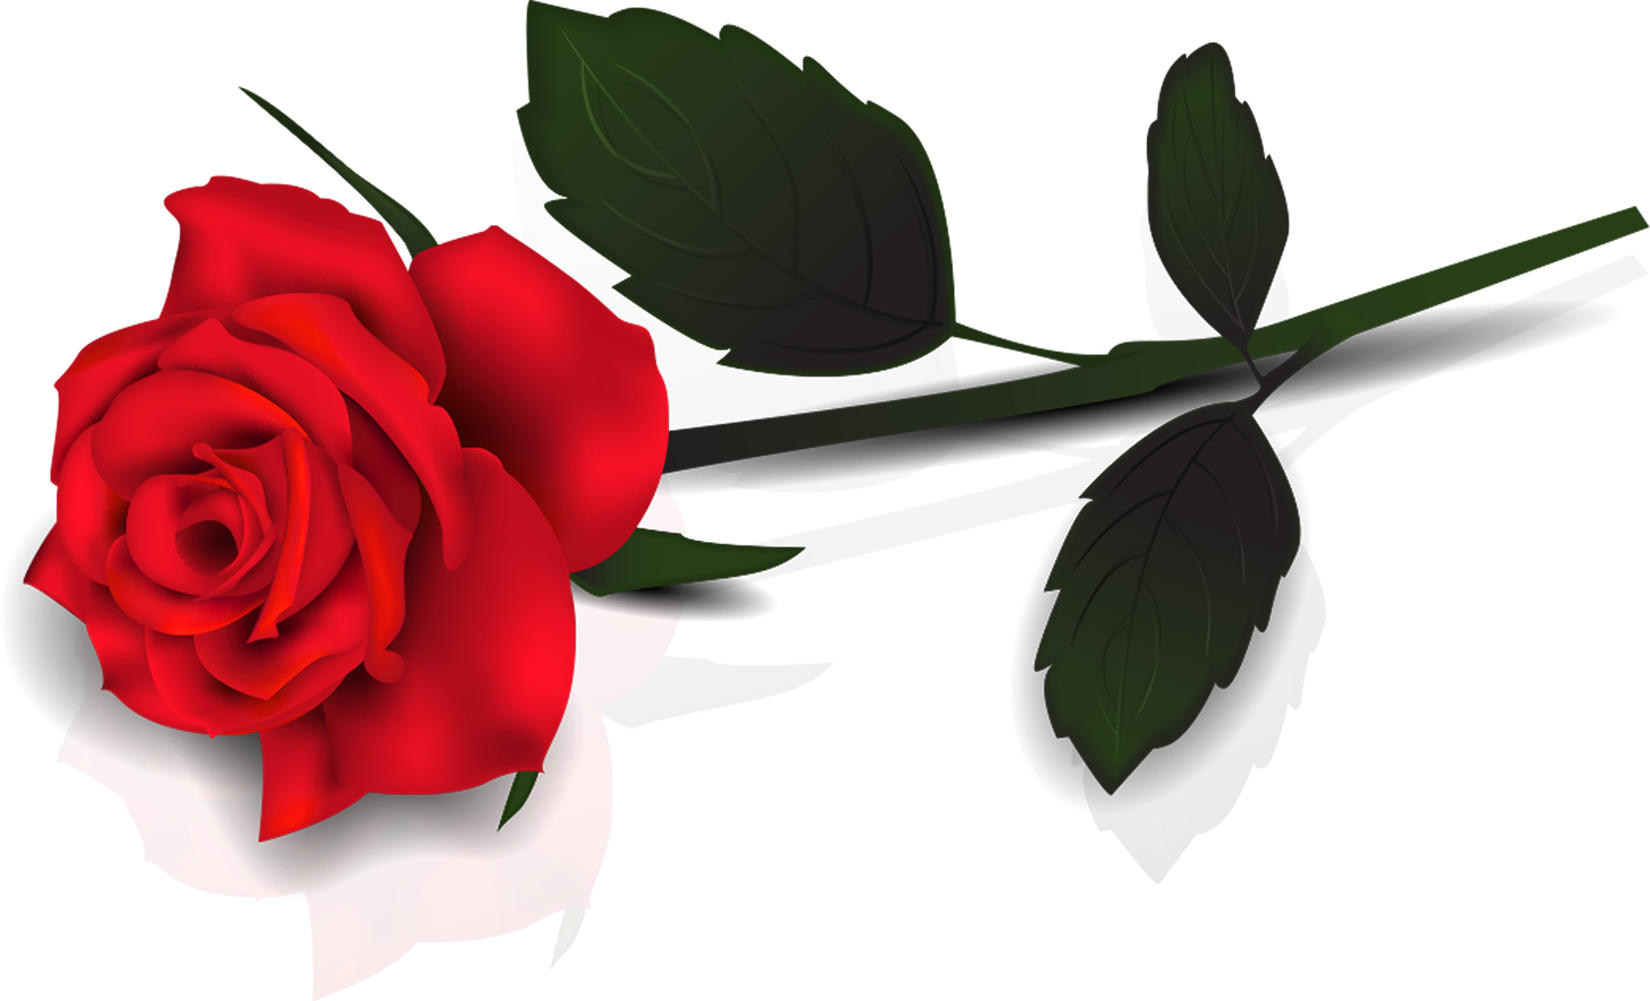 royalty free library Rose clipart. Lovely transparent red gallery.